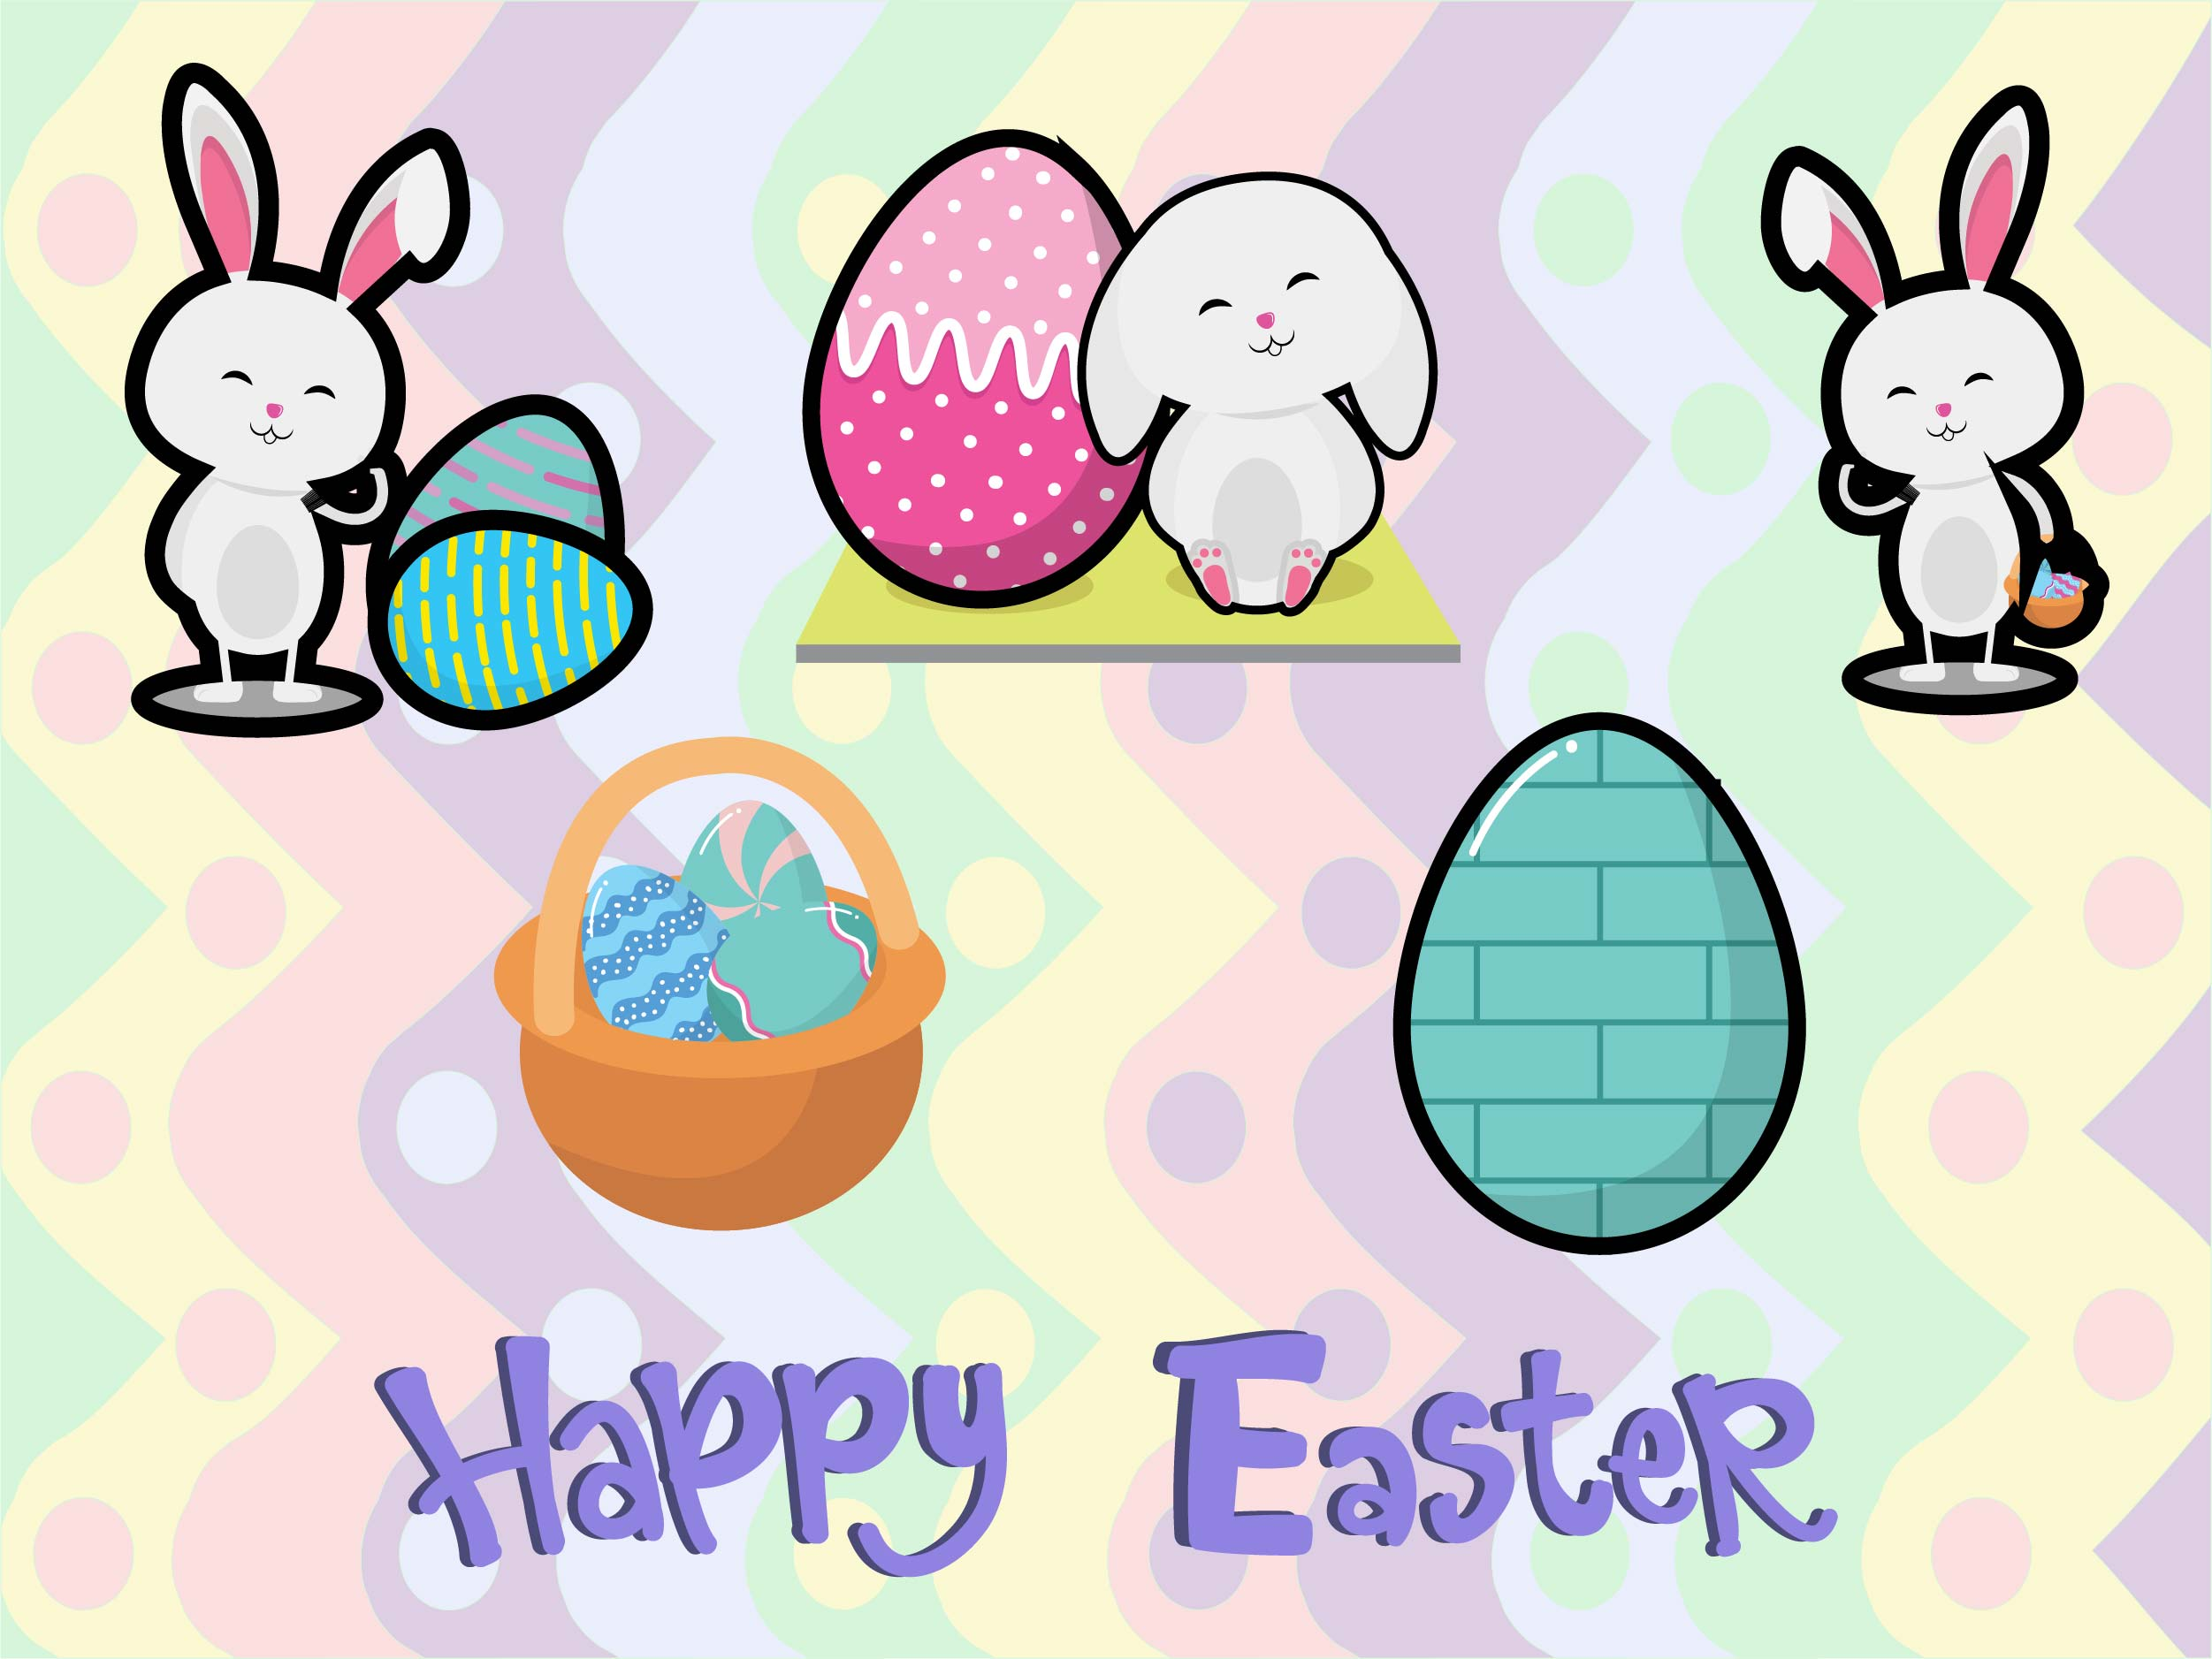 Download Free Easter Graphic By Purplebubble Creative Fabrica for Cricut Explore, Silhouette and other cutting machines.